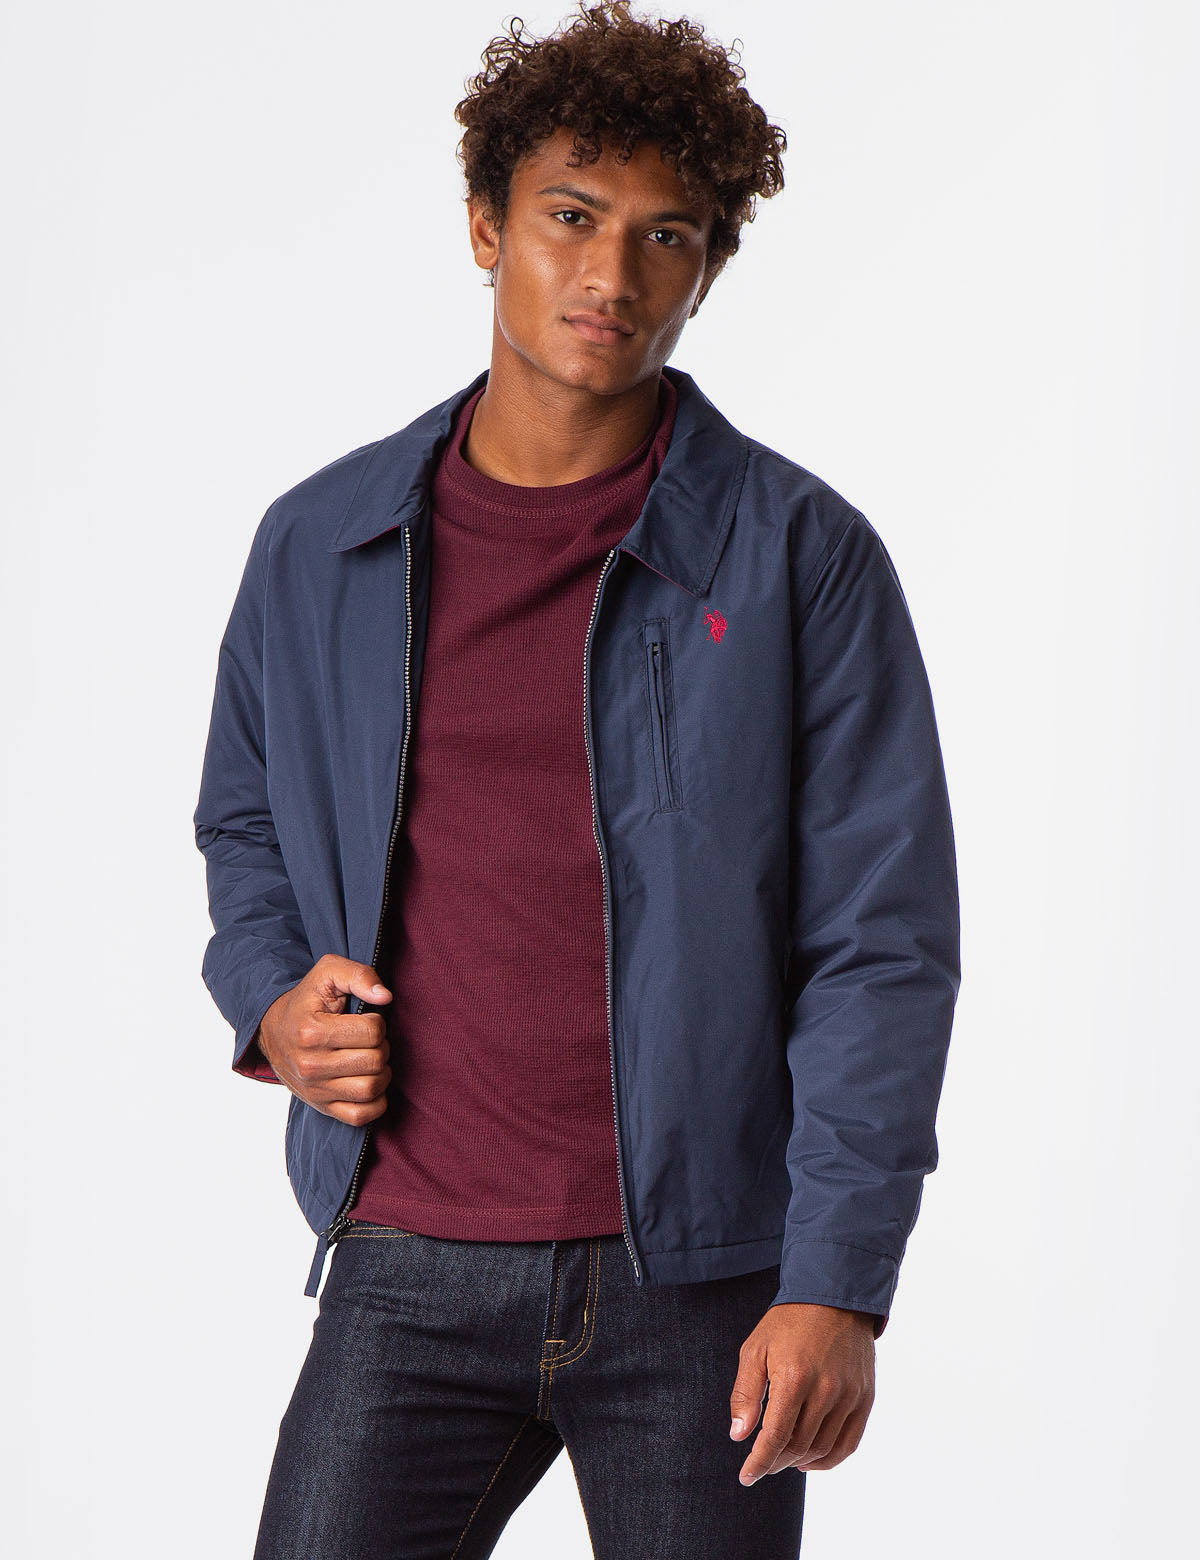 MICRO FLEECE GOLF JACKET - U.S. Polo Assn.